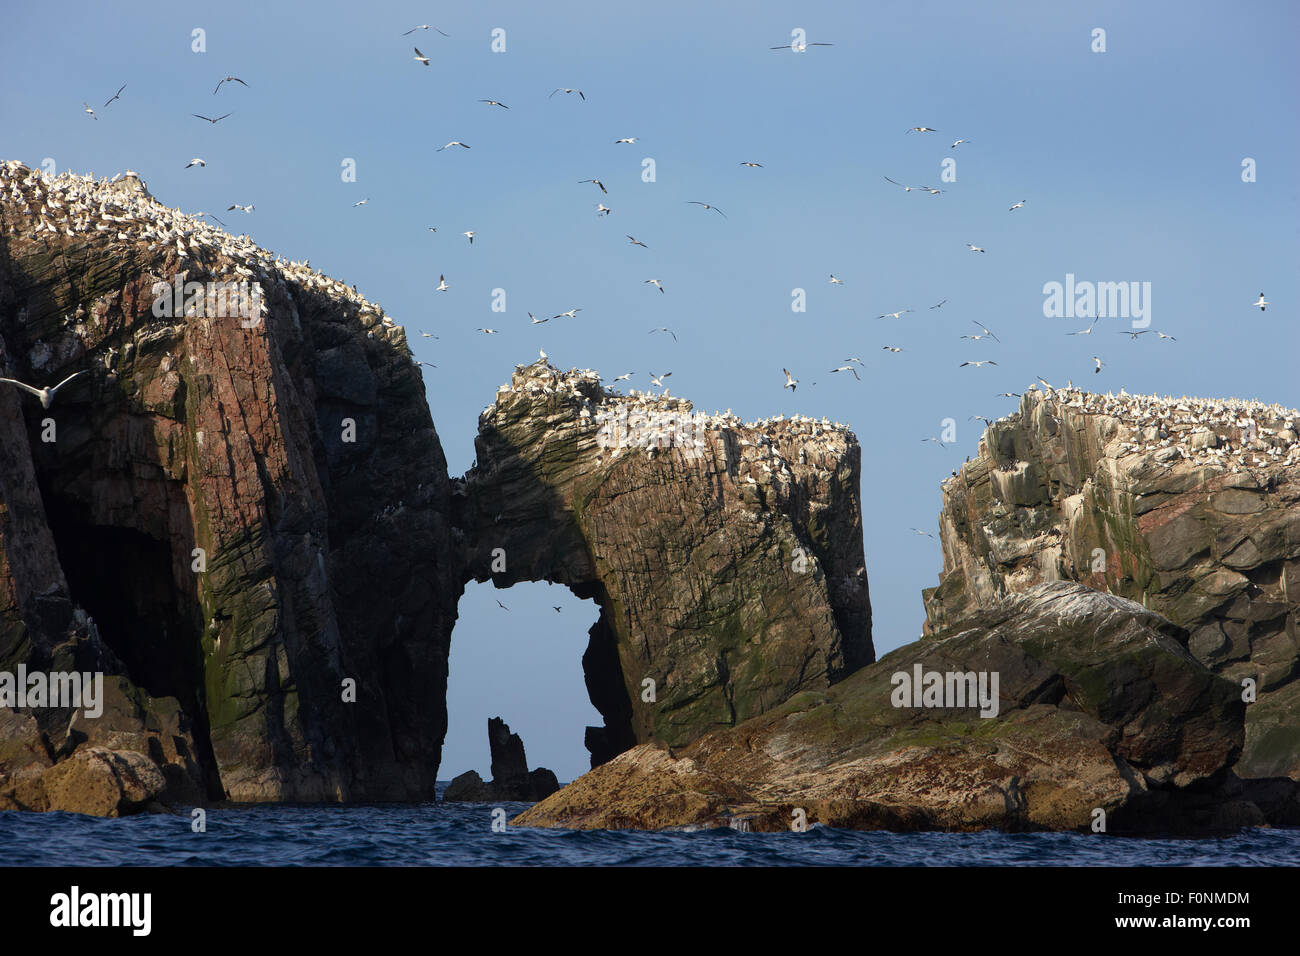 Northern gannet (Morus bassanus) colony, The Flannans, Outer Hebrides, Scotland, July 2009 - Stock Image